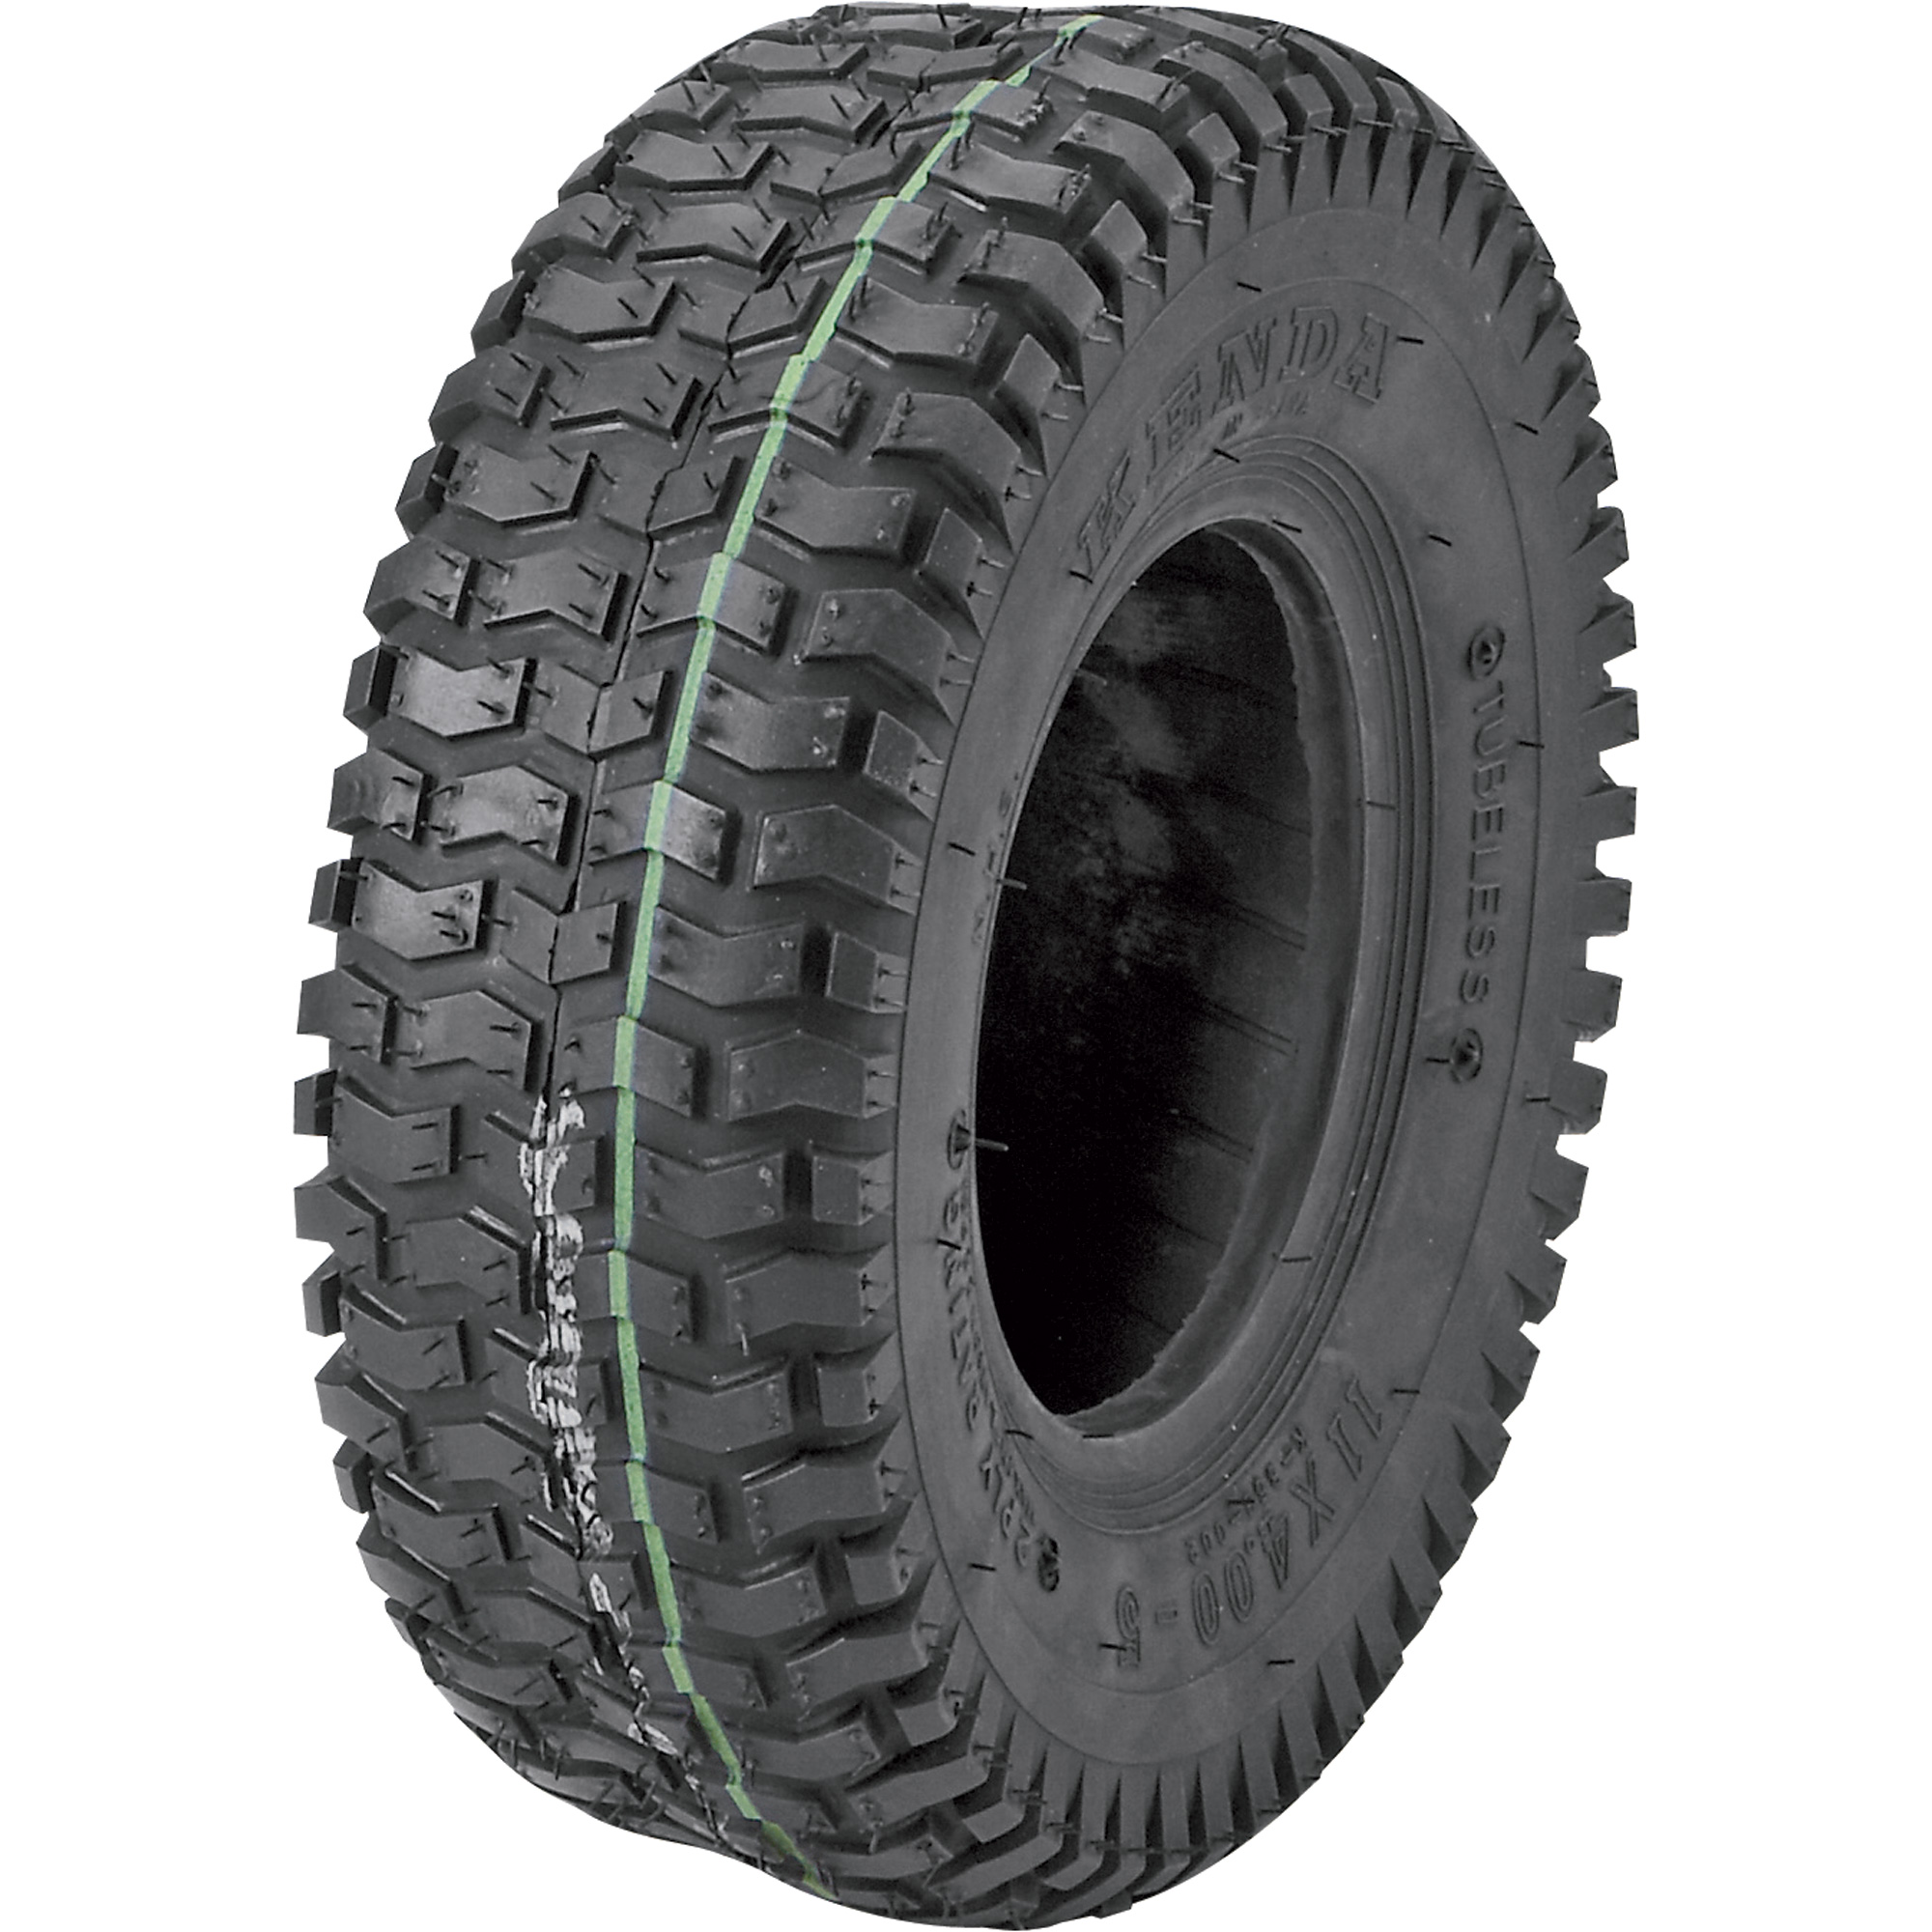 Kenda Lawn Tractor Replacement Tubeless Turf Tire 16in X 650 8 Northern Tool Equipment